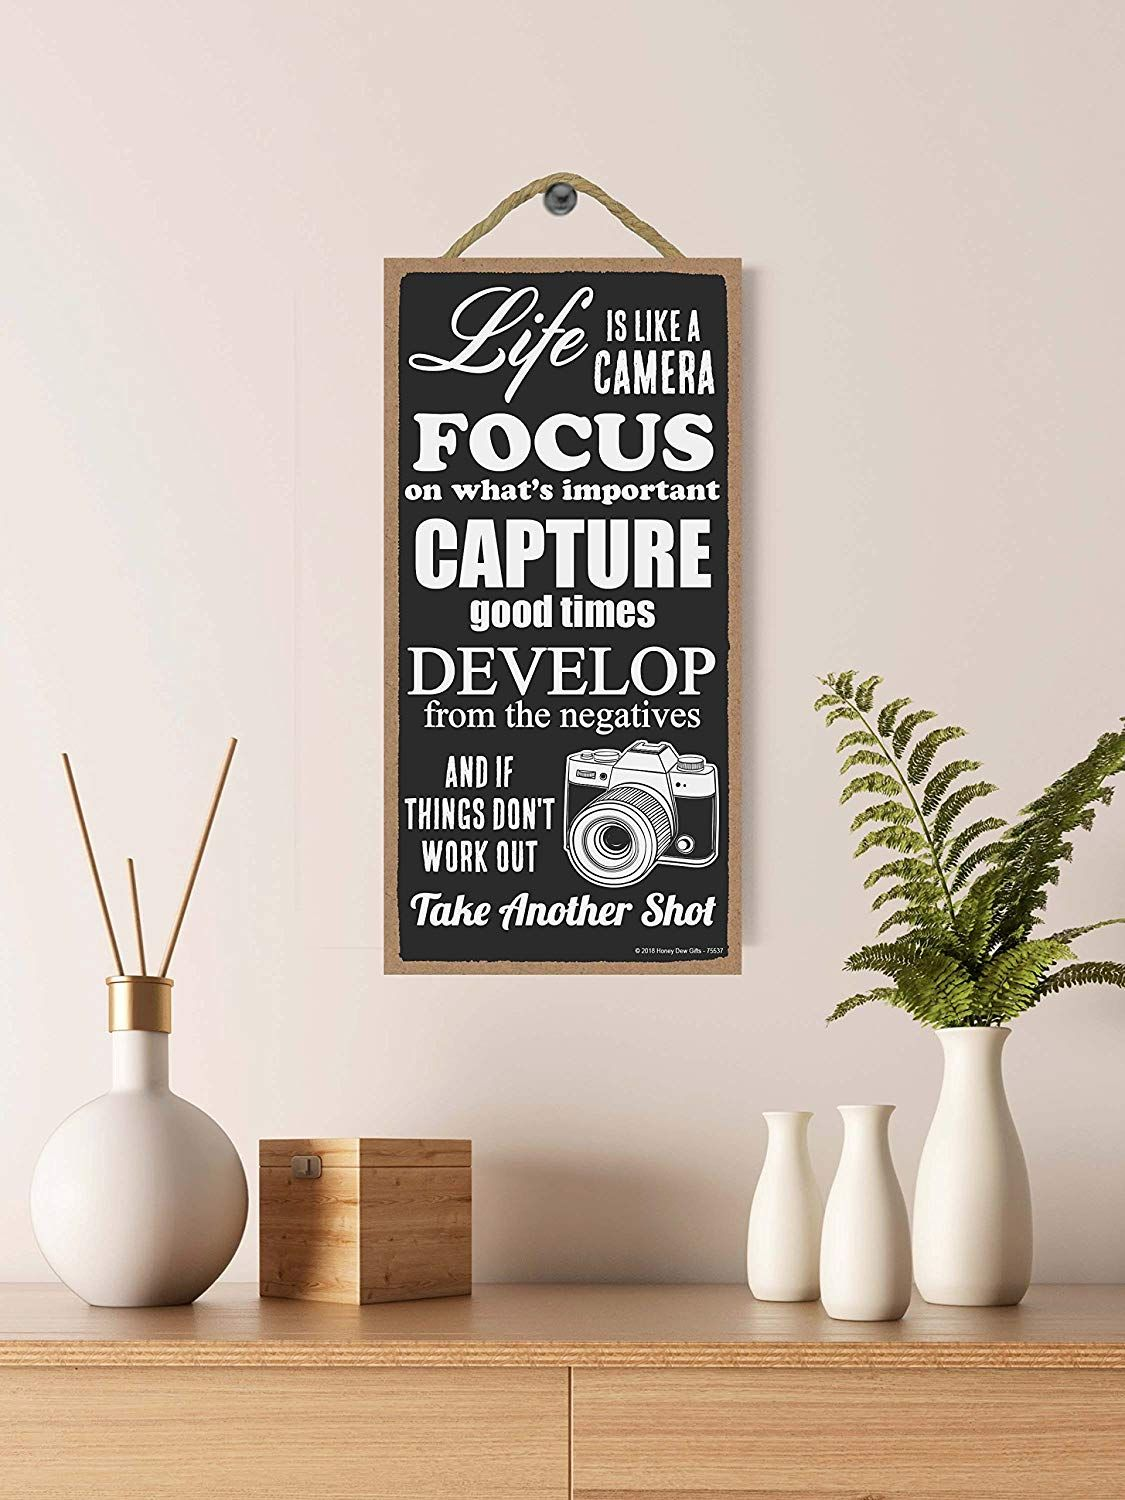 Decorative Wood Sign Home Decor Life is Like a Camera 5 x 10 inch Hanging Decor Inspirational Wall Art